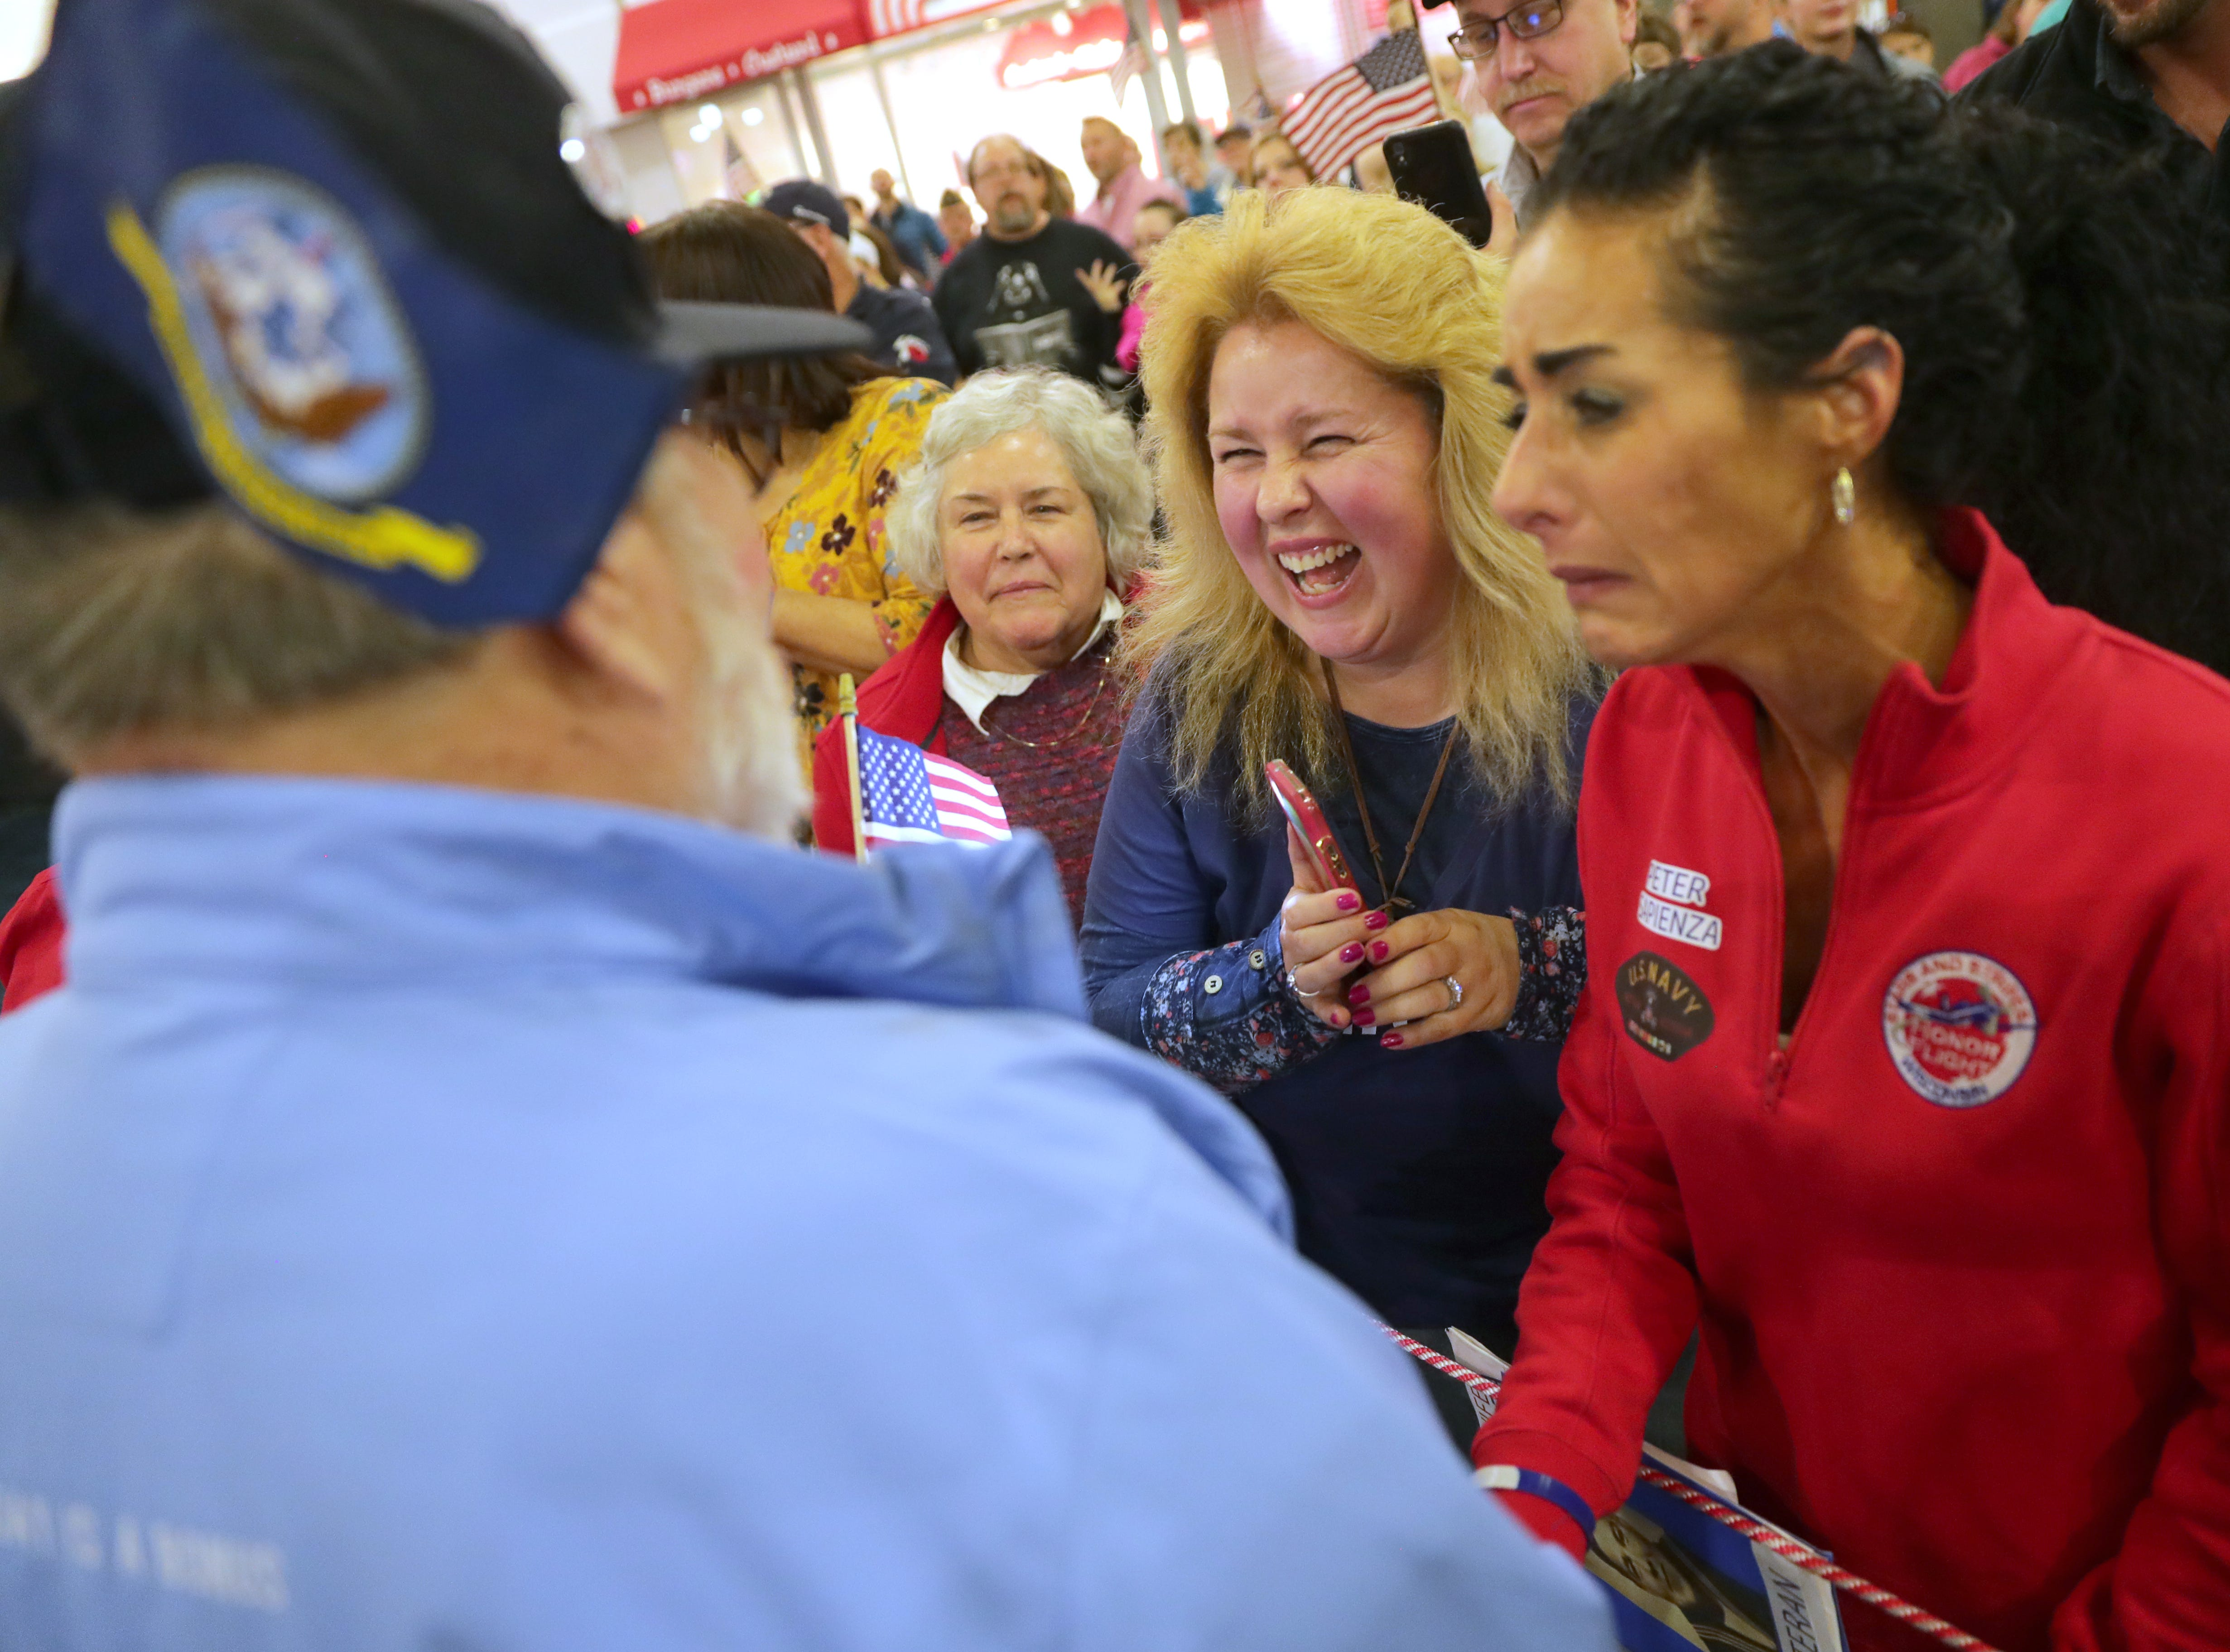 Vietnam Navy veteran Pete Sapienza of Big Bend is greeted by his wife, Laurie Sapienza (from left), and two daughters, Kathie Flitsch of Lannon and Amy Sapienza of Mukwonago during the Stars and Stripes Honor Flight welcome home ceremony.